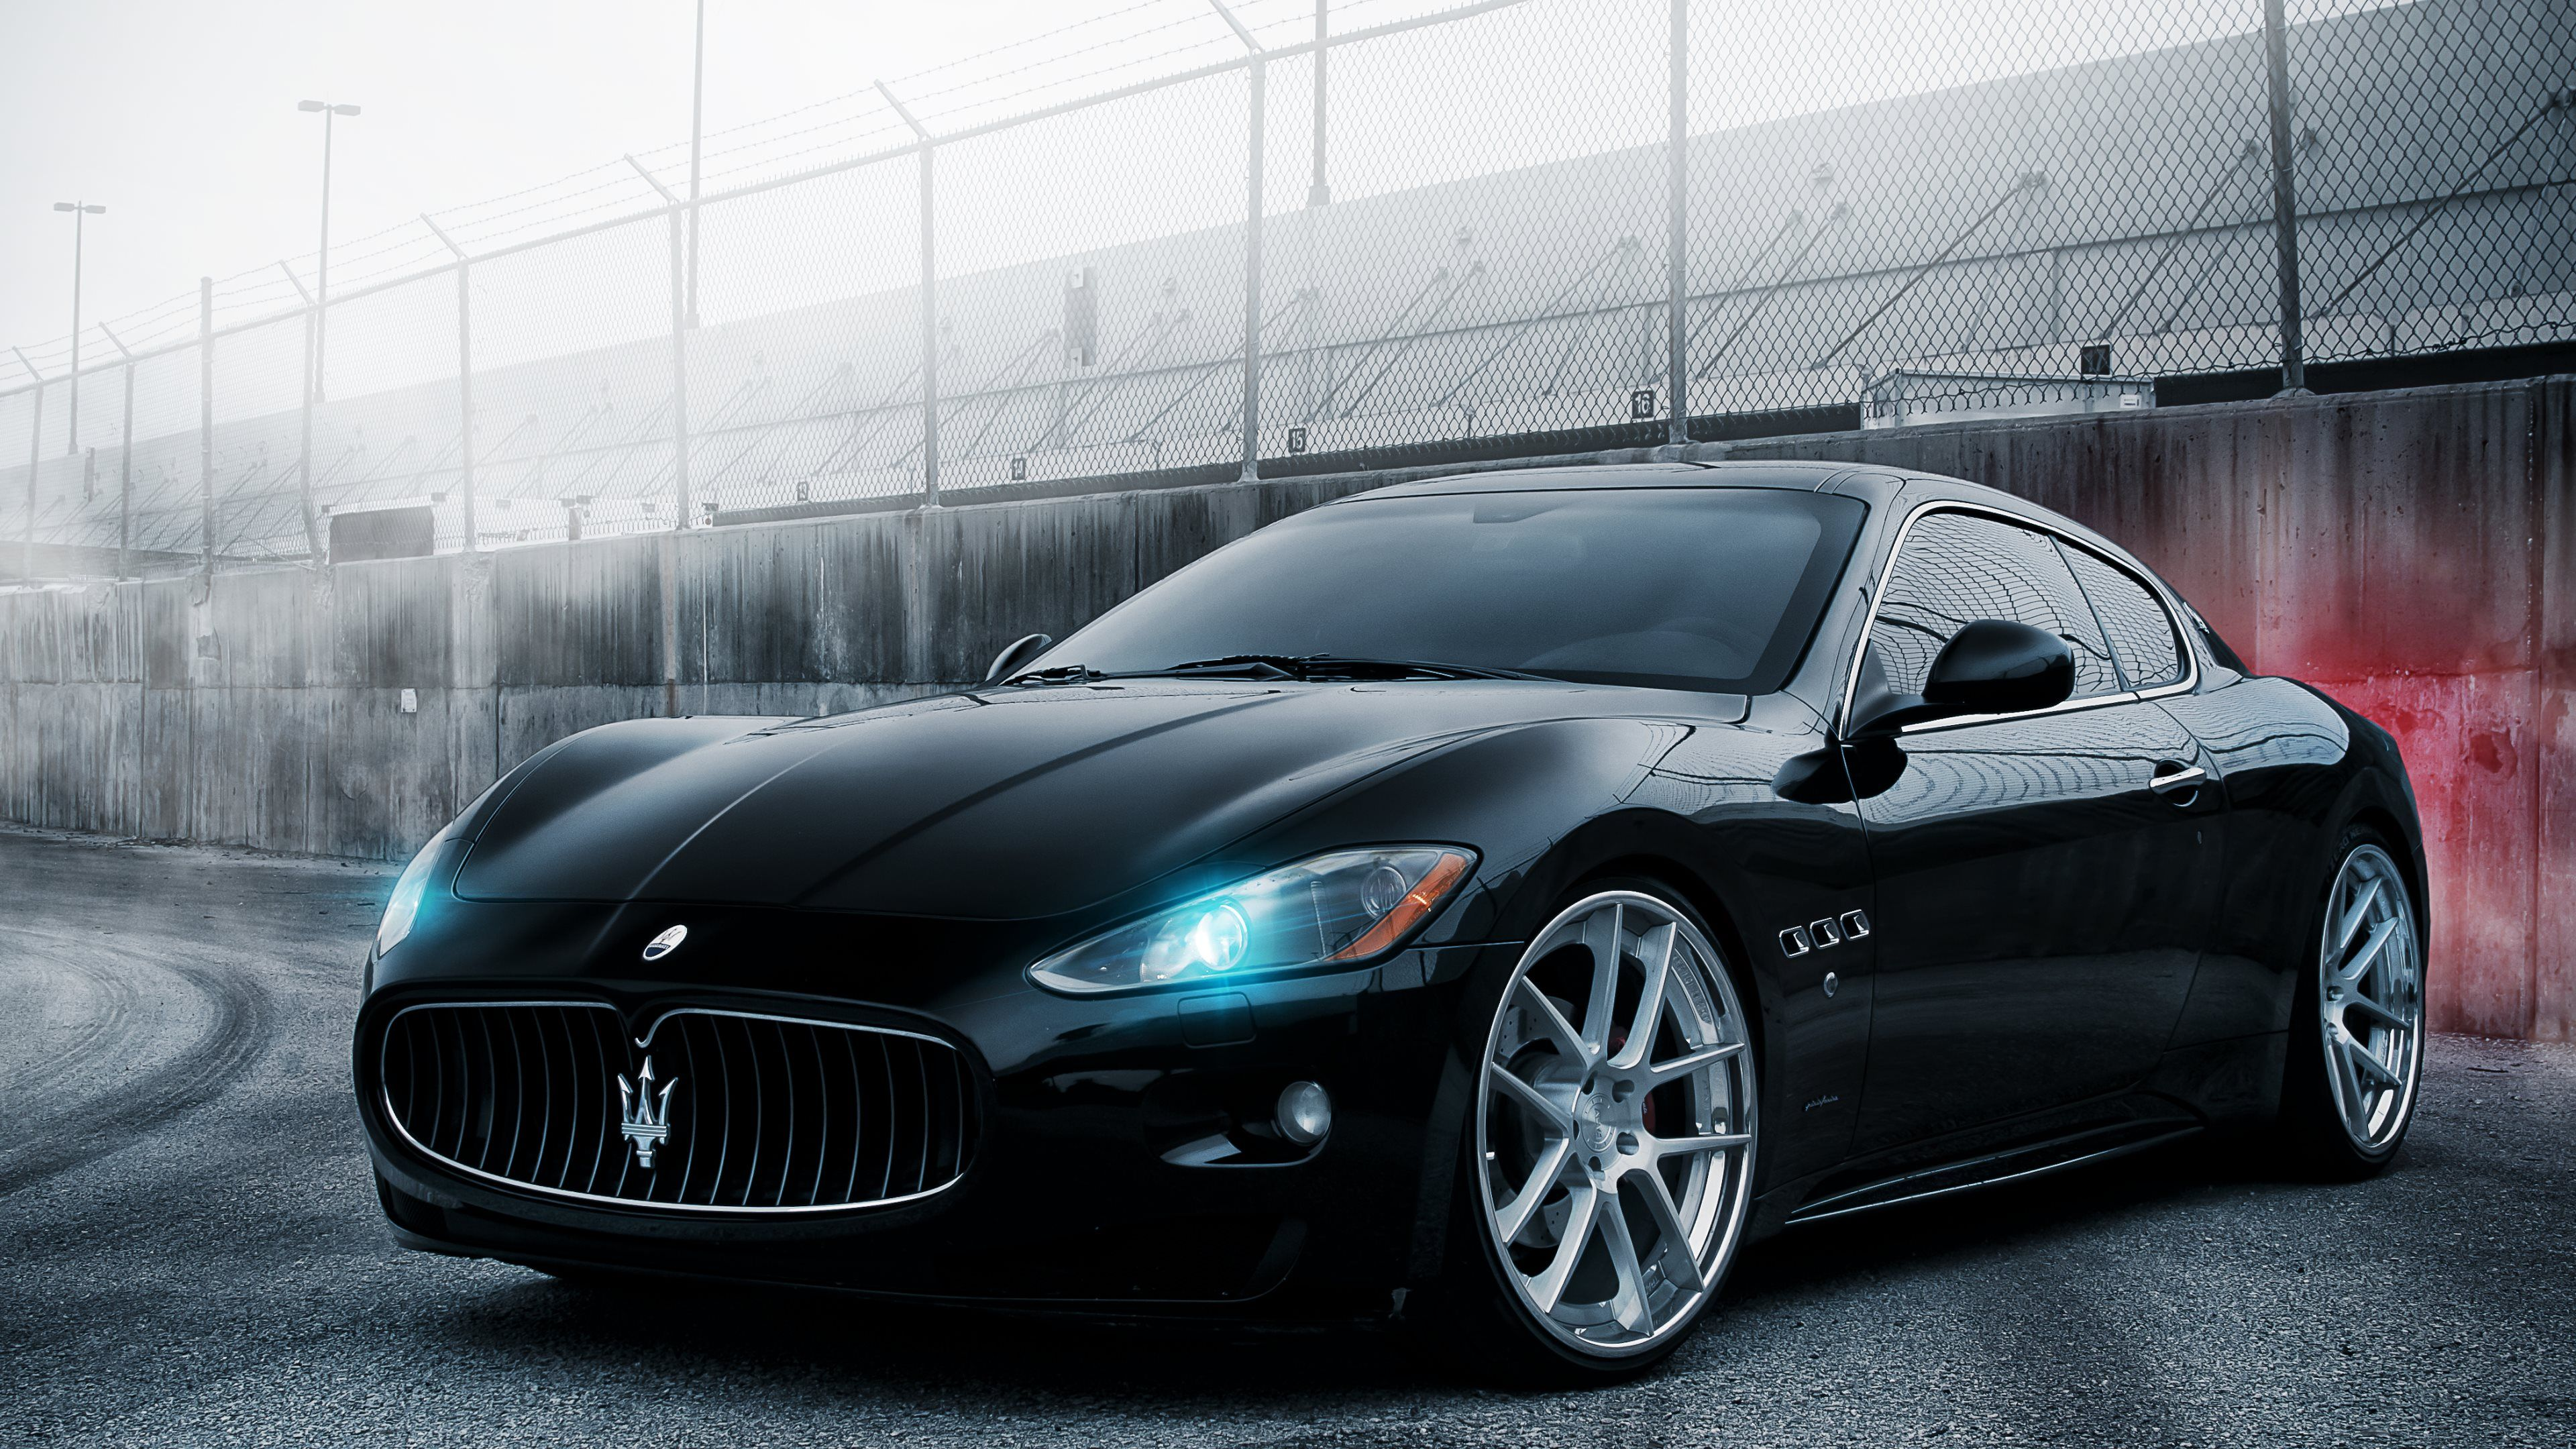 Maseratigtleftfrontviewultrahdg 38402160 hd wallpapers black is black hd wide wallpaper for widescreen wallpapers hd wallpapers publicscrutiny Images